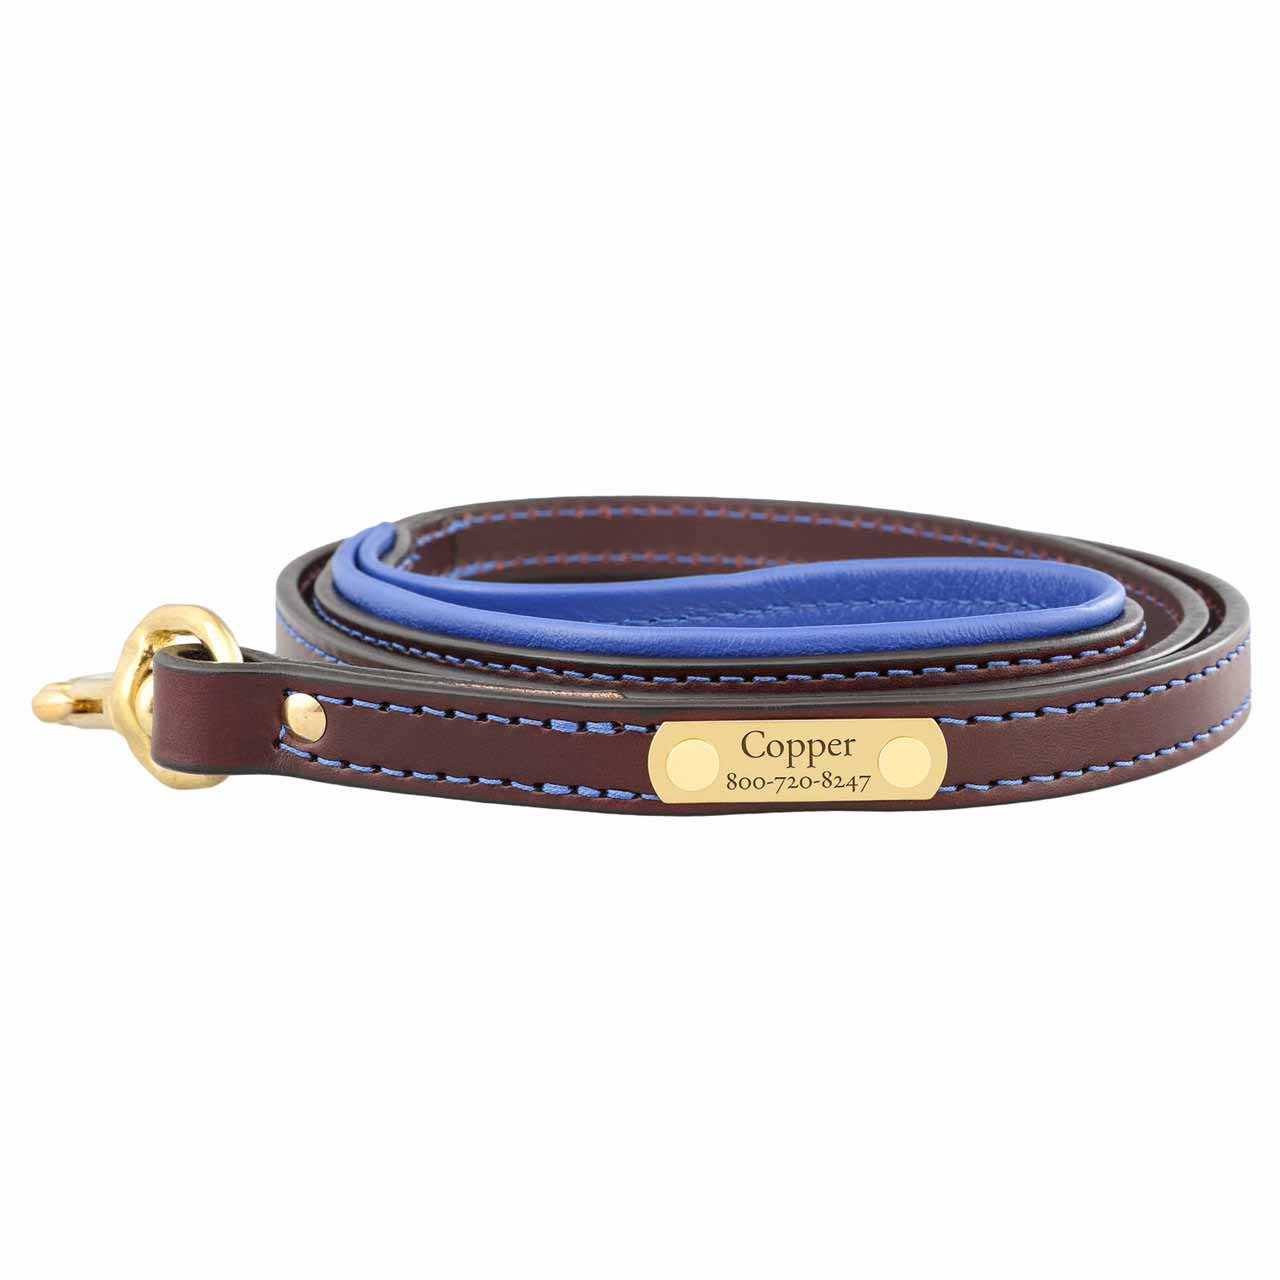 Padded Leather Leash with Nameplate - Brown with Blue